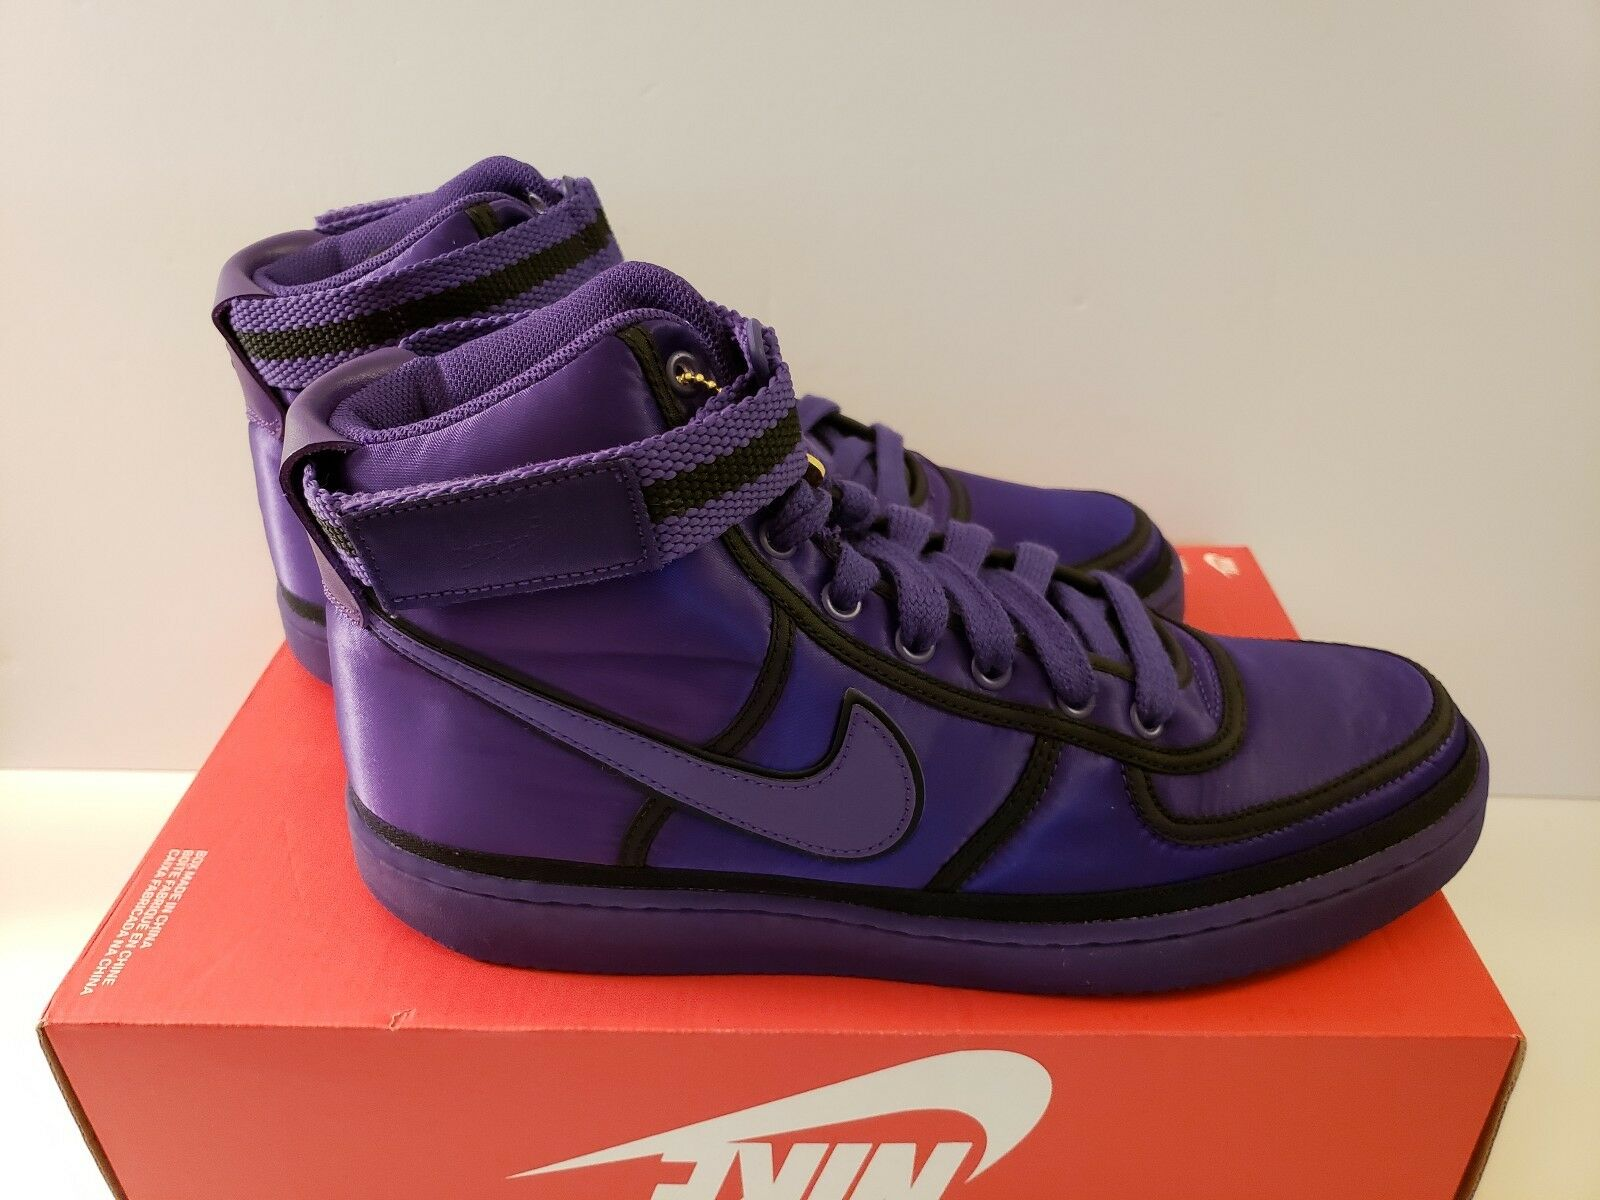 NIKE VANDAL HIGH SUPREME QS PRPL Size 10.5 AQ2176 500 COURT PURPLE